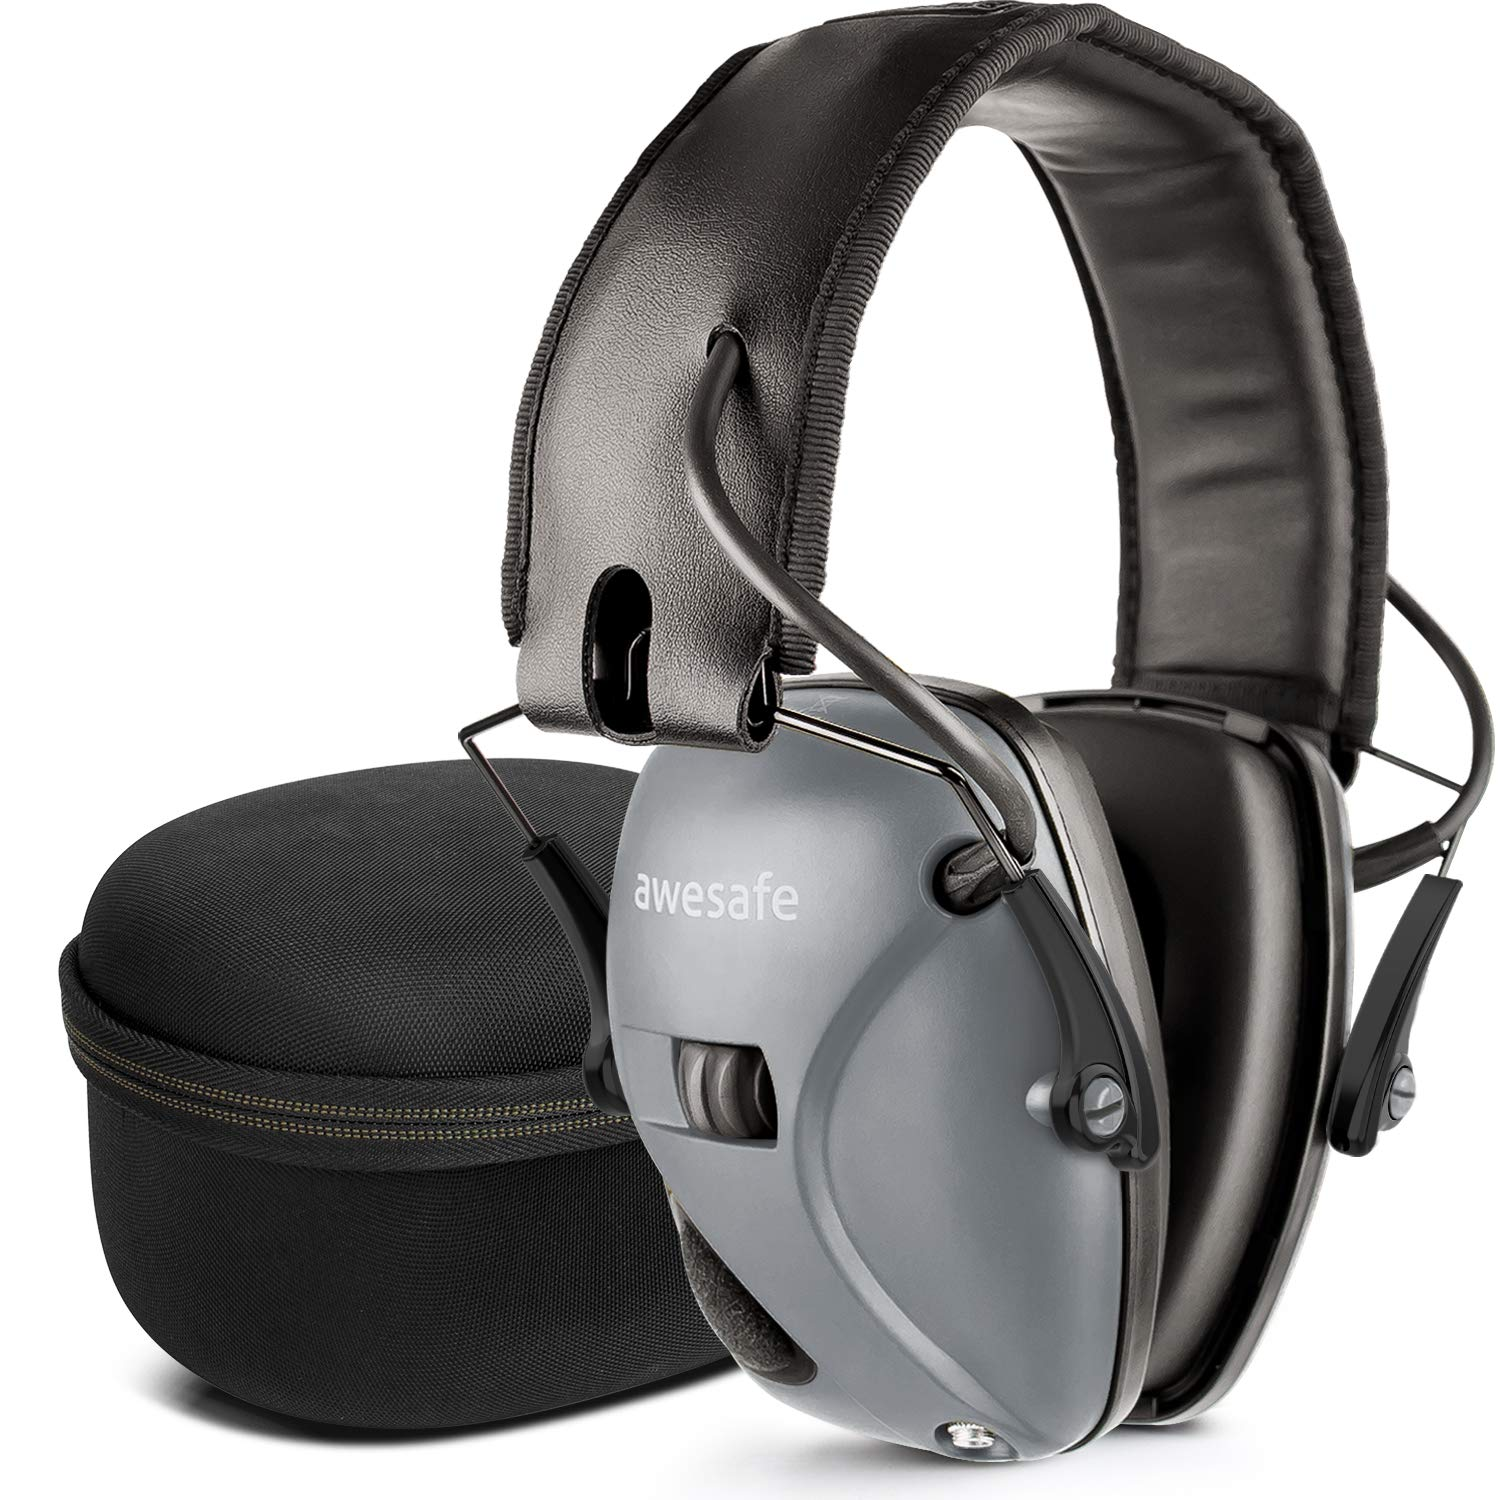 awesafe Electronic Shooting Earmuff, Noise Reduction Sound Amplification Electronic Safety Ear Muffs and Storage Case, Grey ...